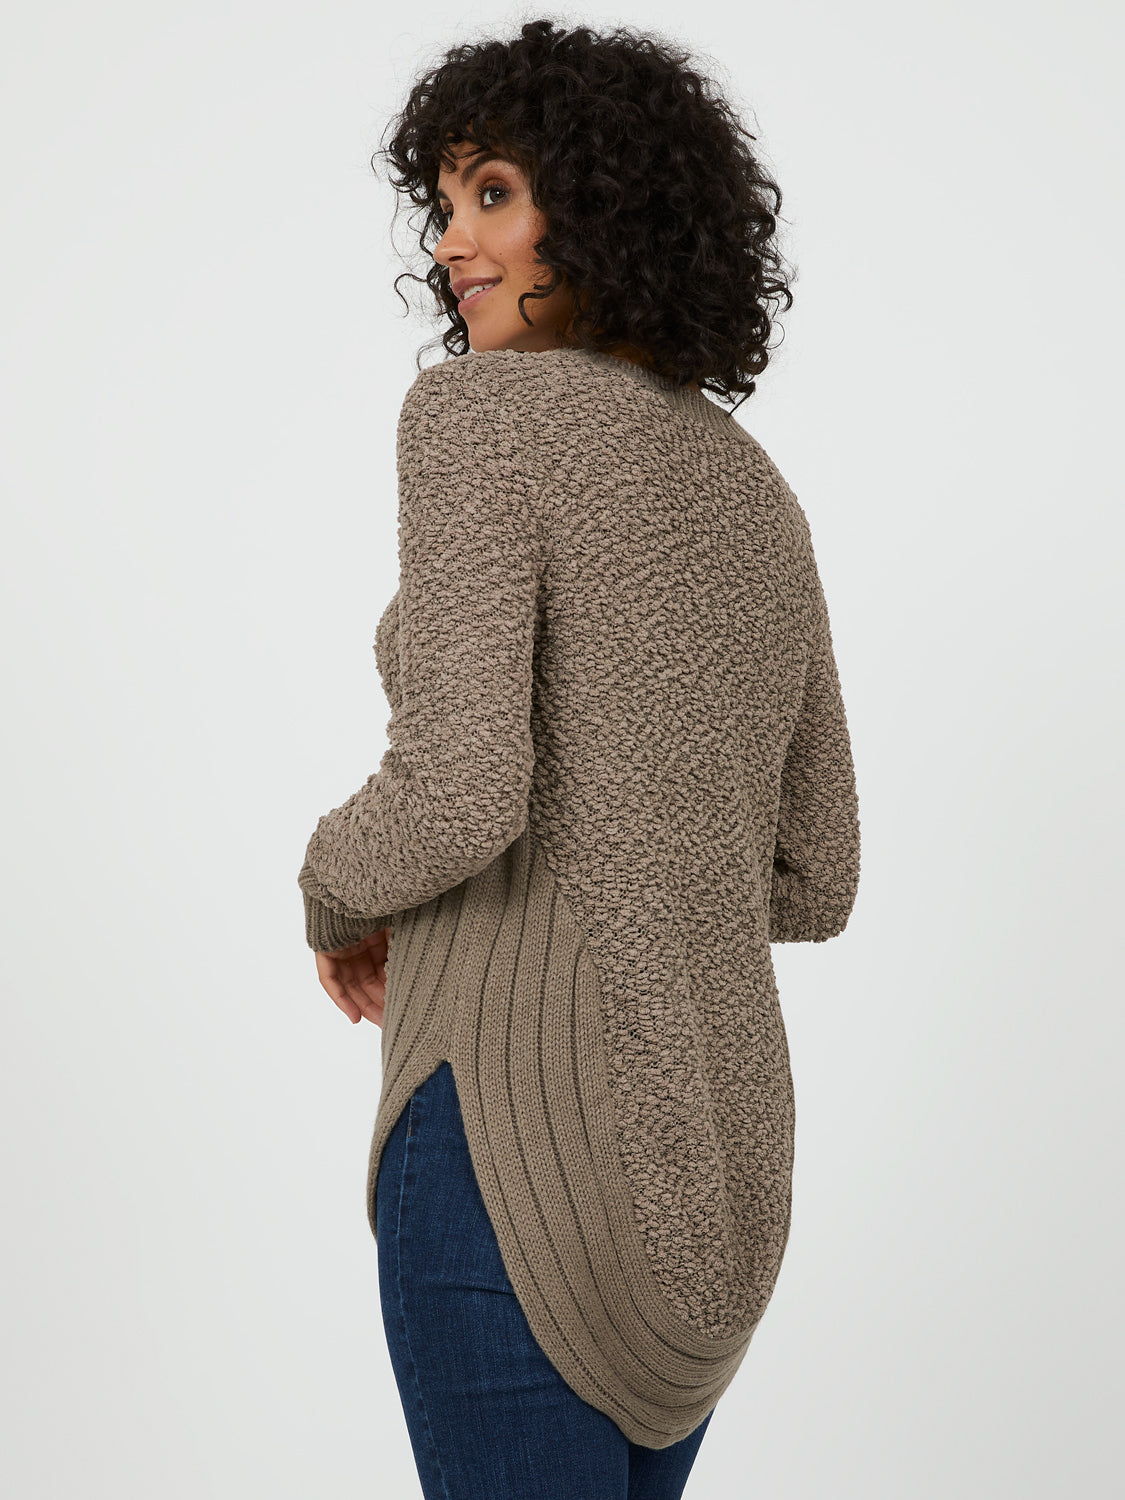 Crew Neck Popcorn Yarn Sweater